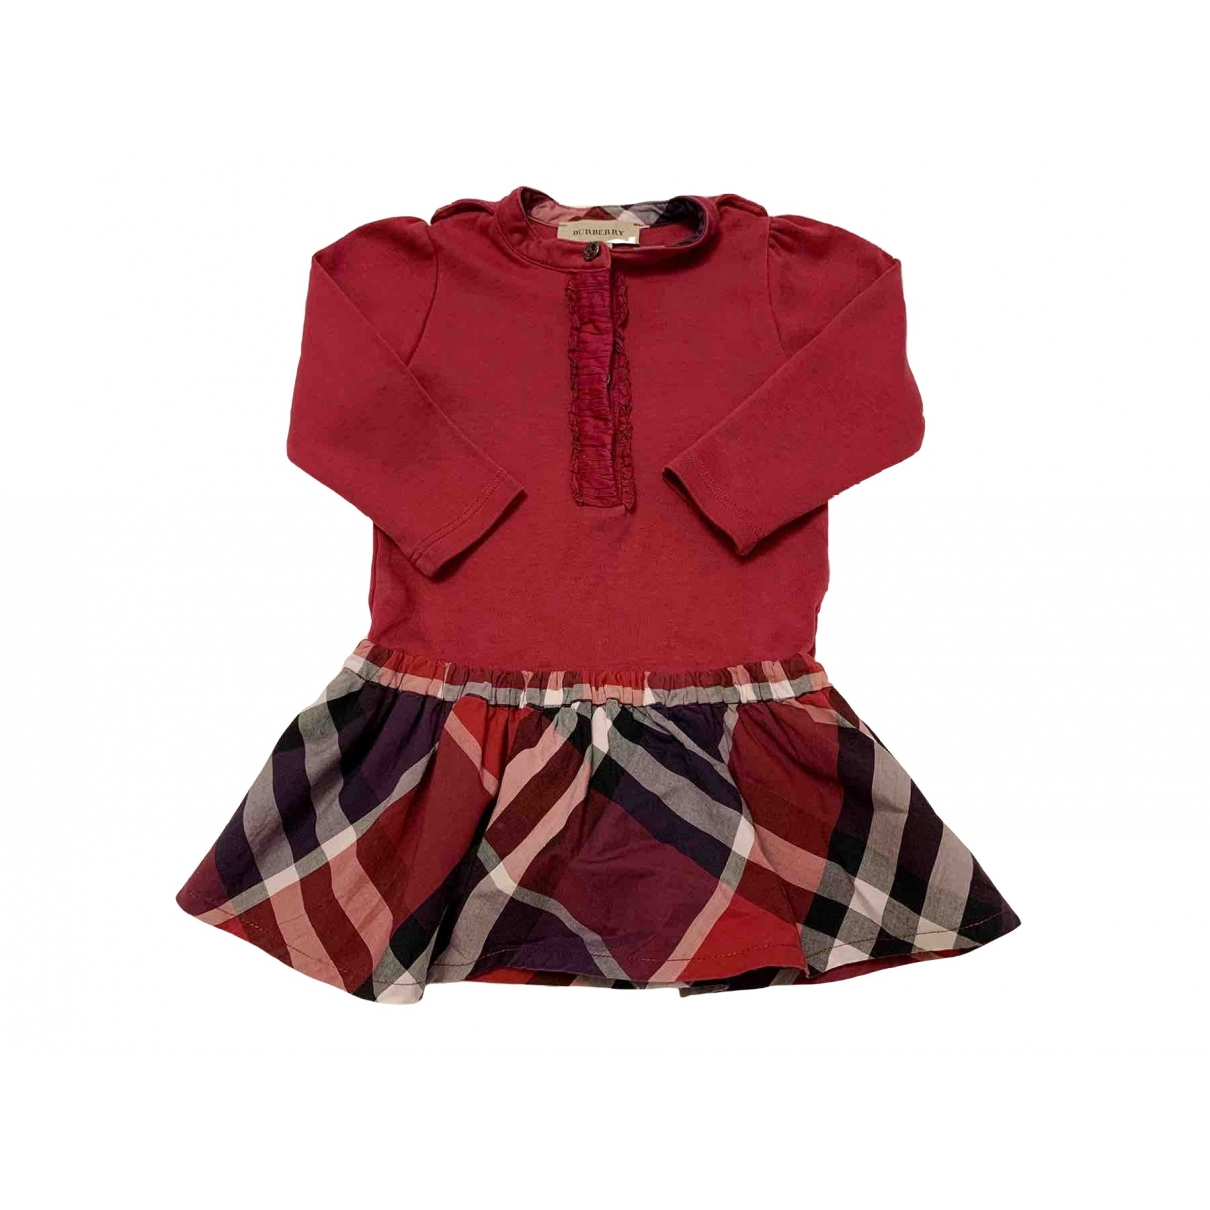 Burberry \N Red Cotton skirt for Kids 12 months - until 29 inches UK